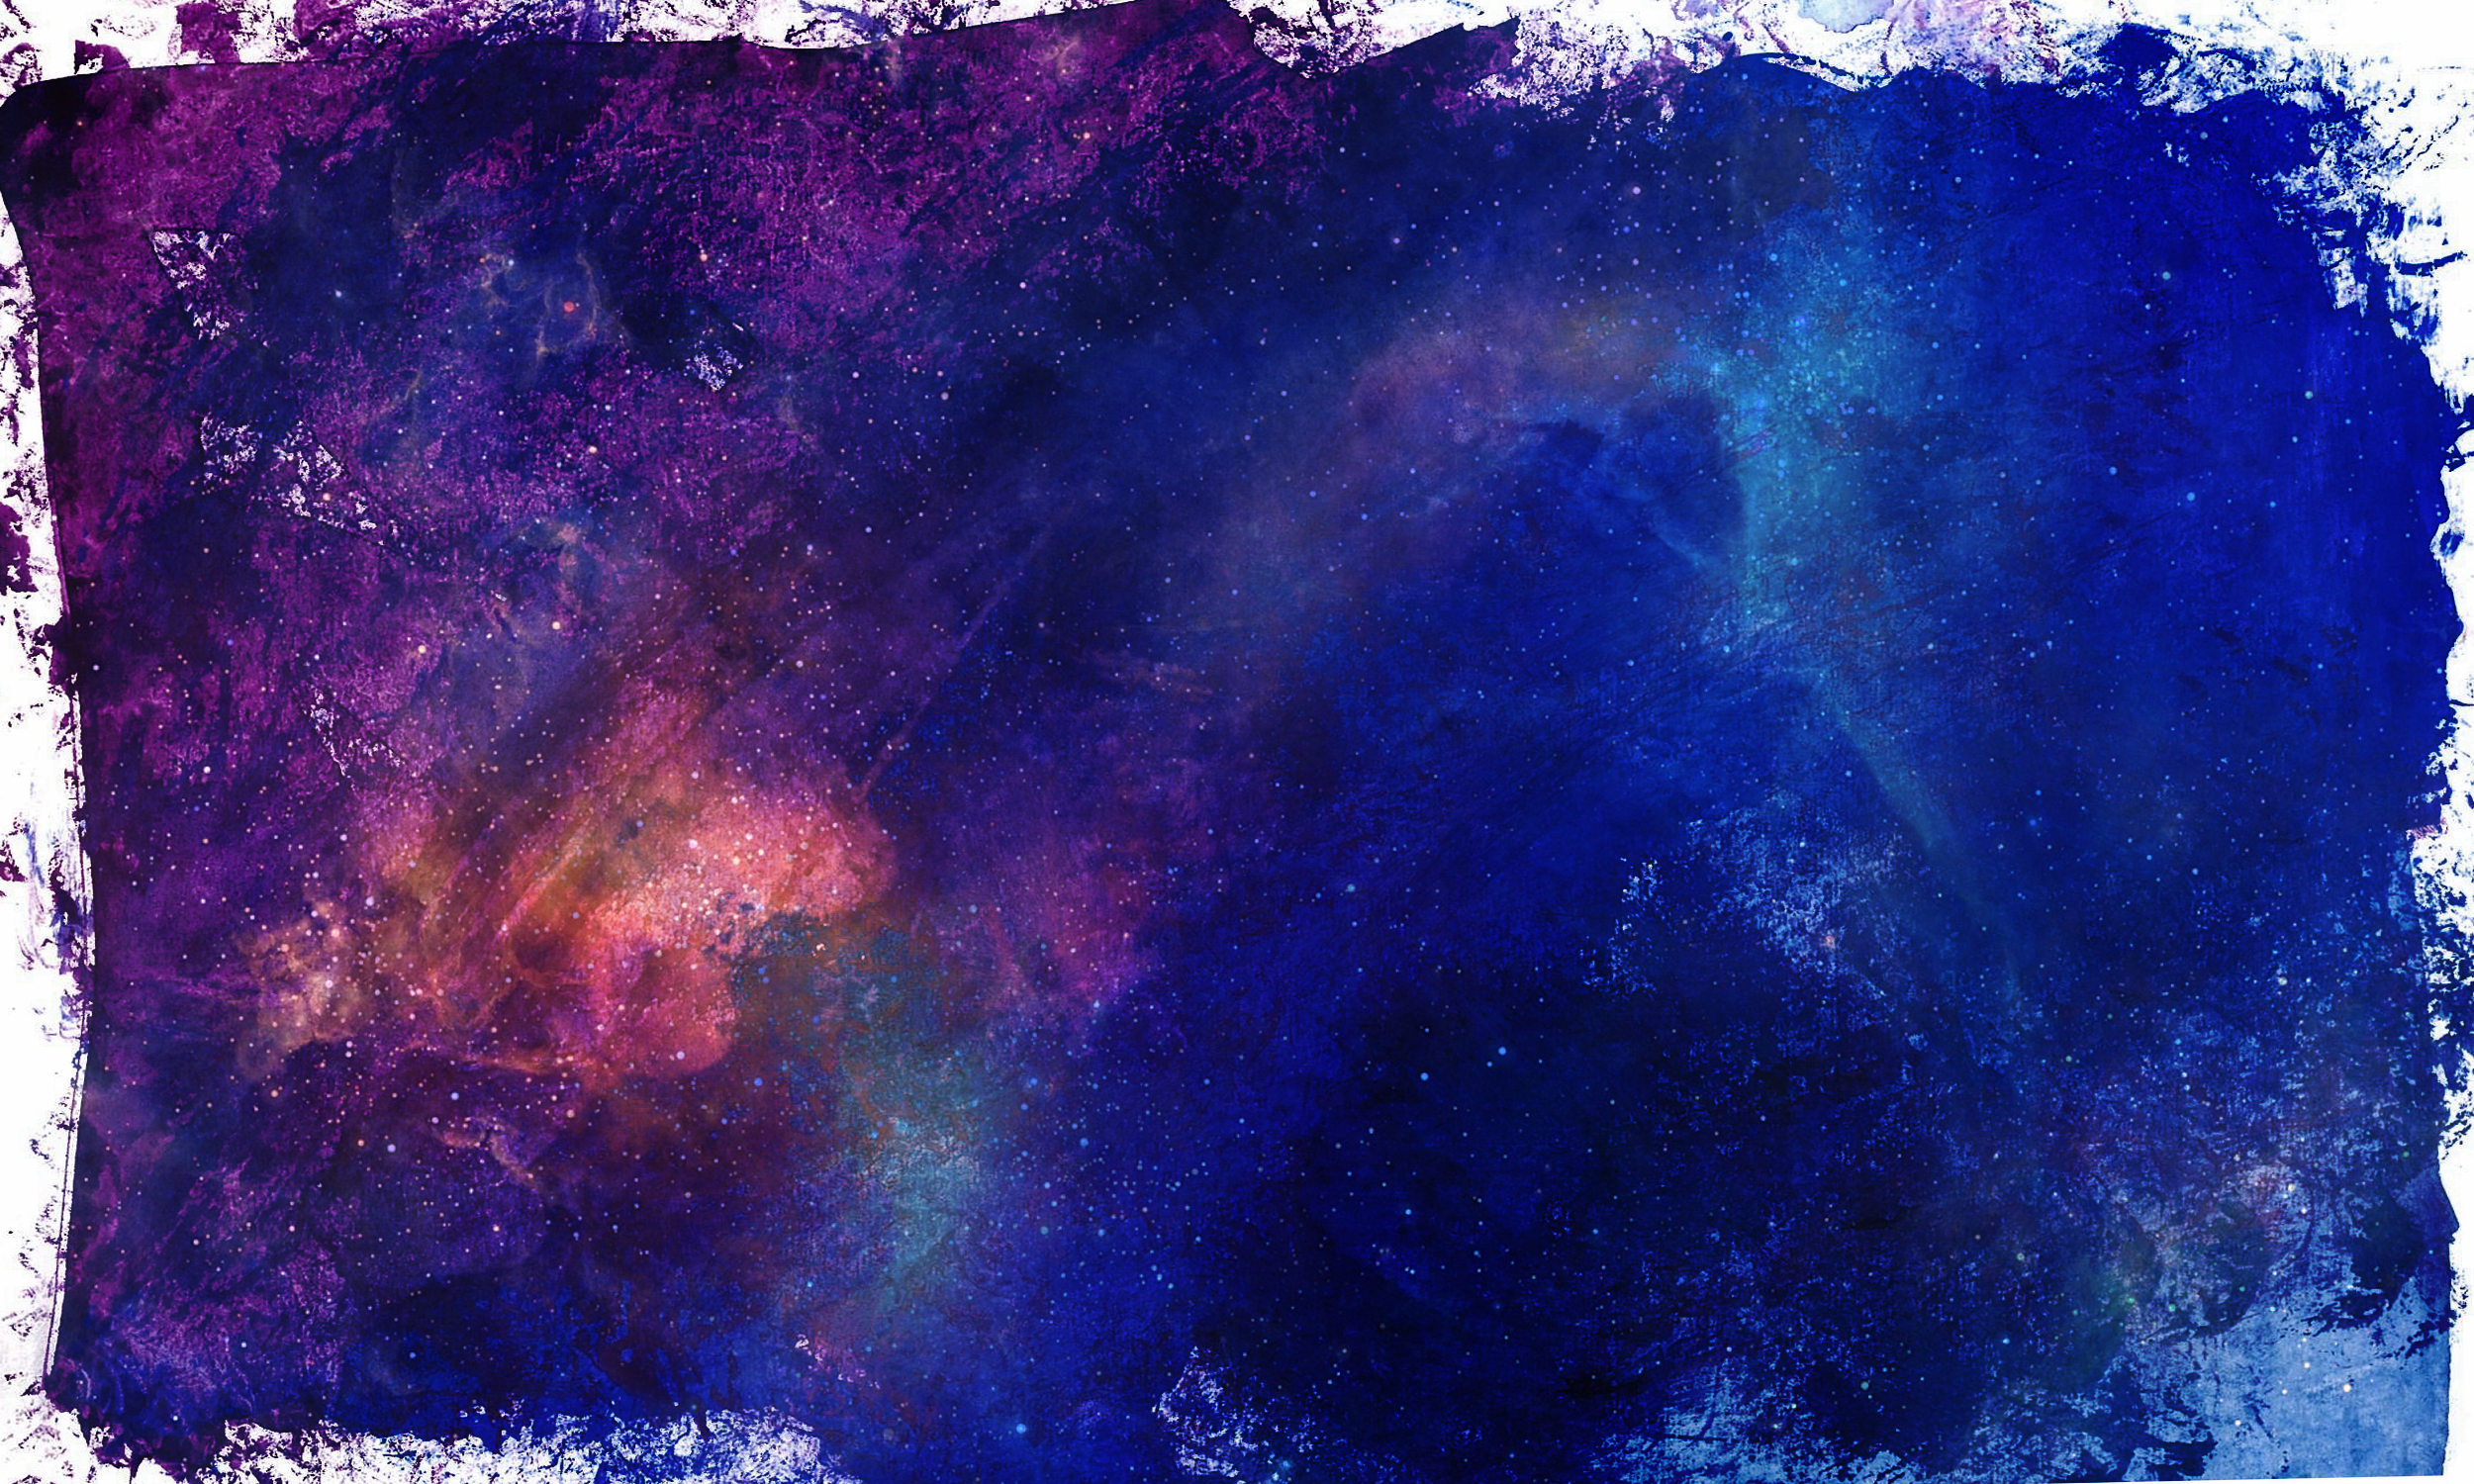 Watercolor Hd Wallpaper Background Image 2500x1500